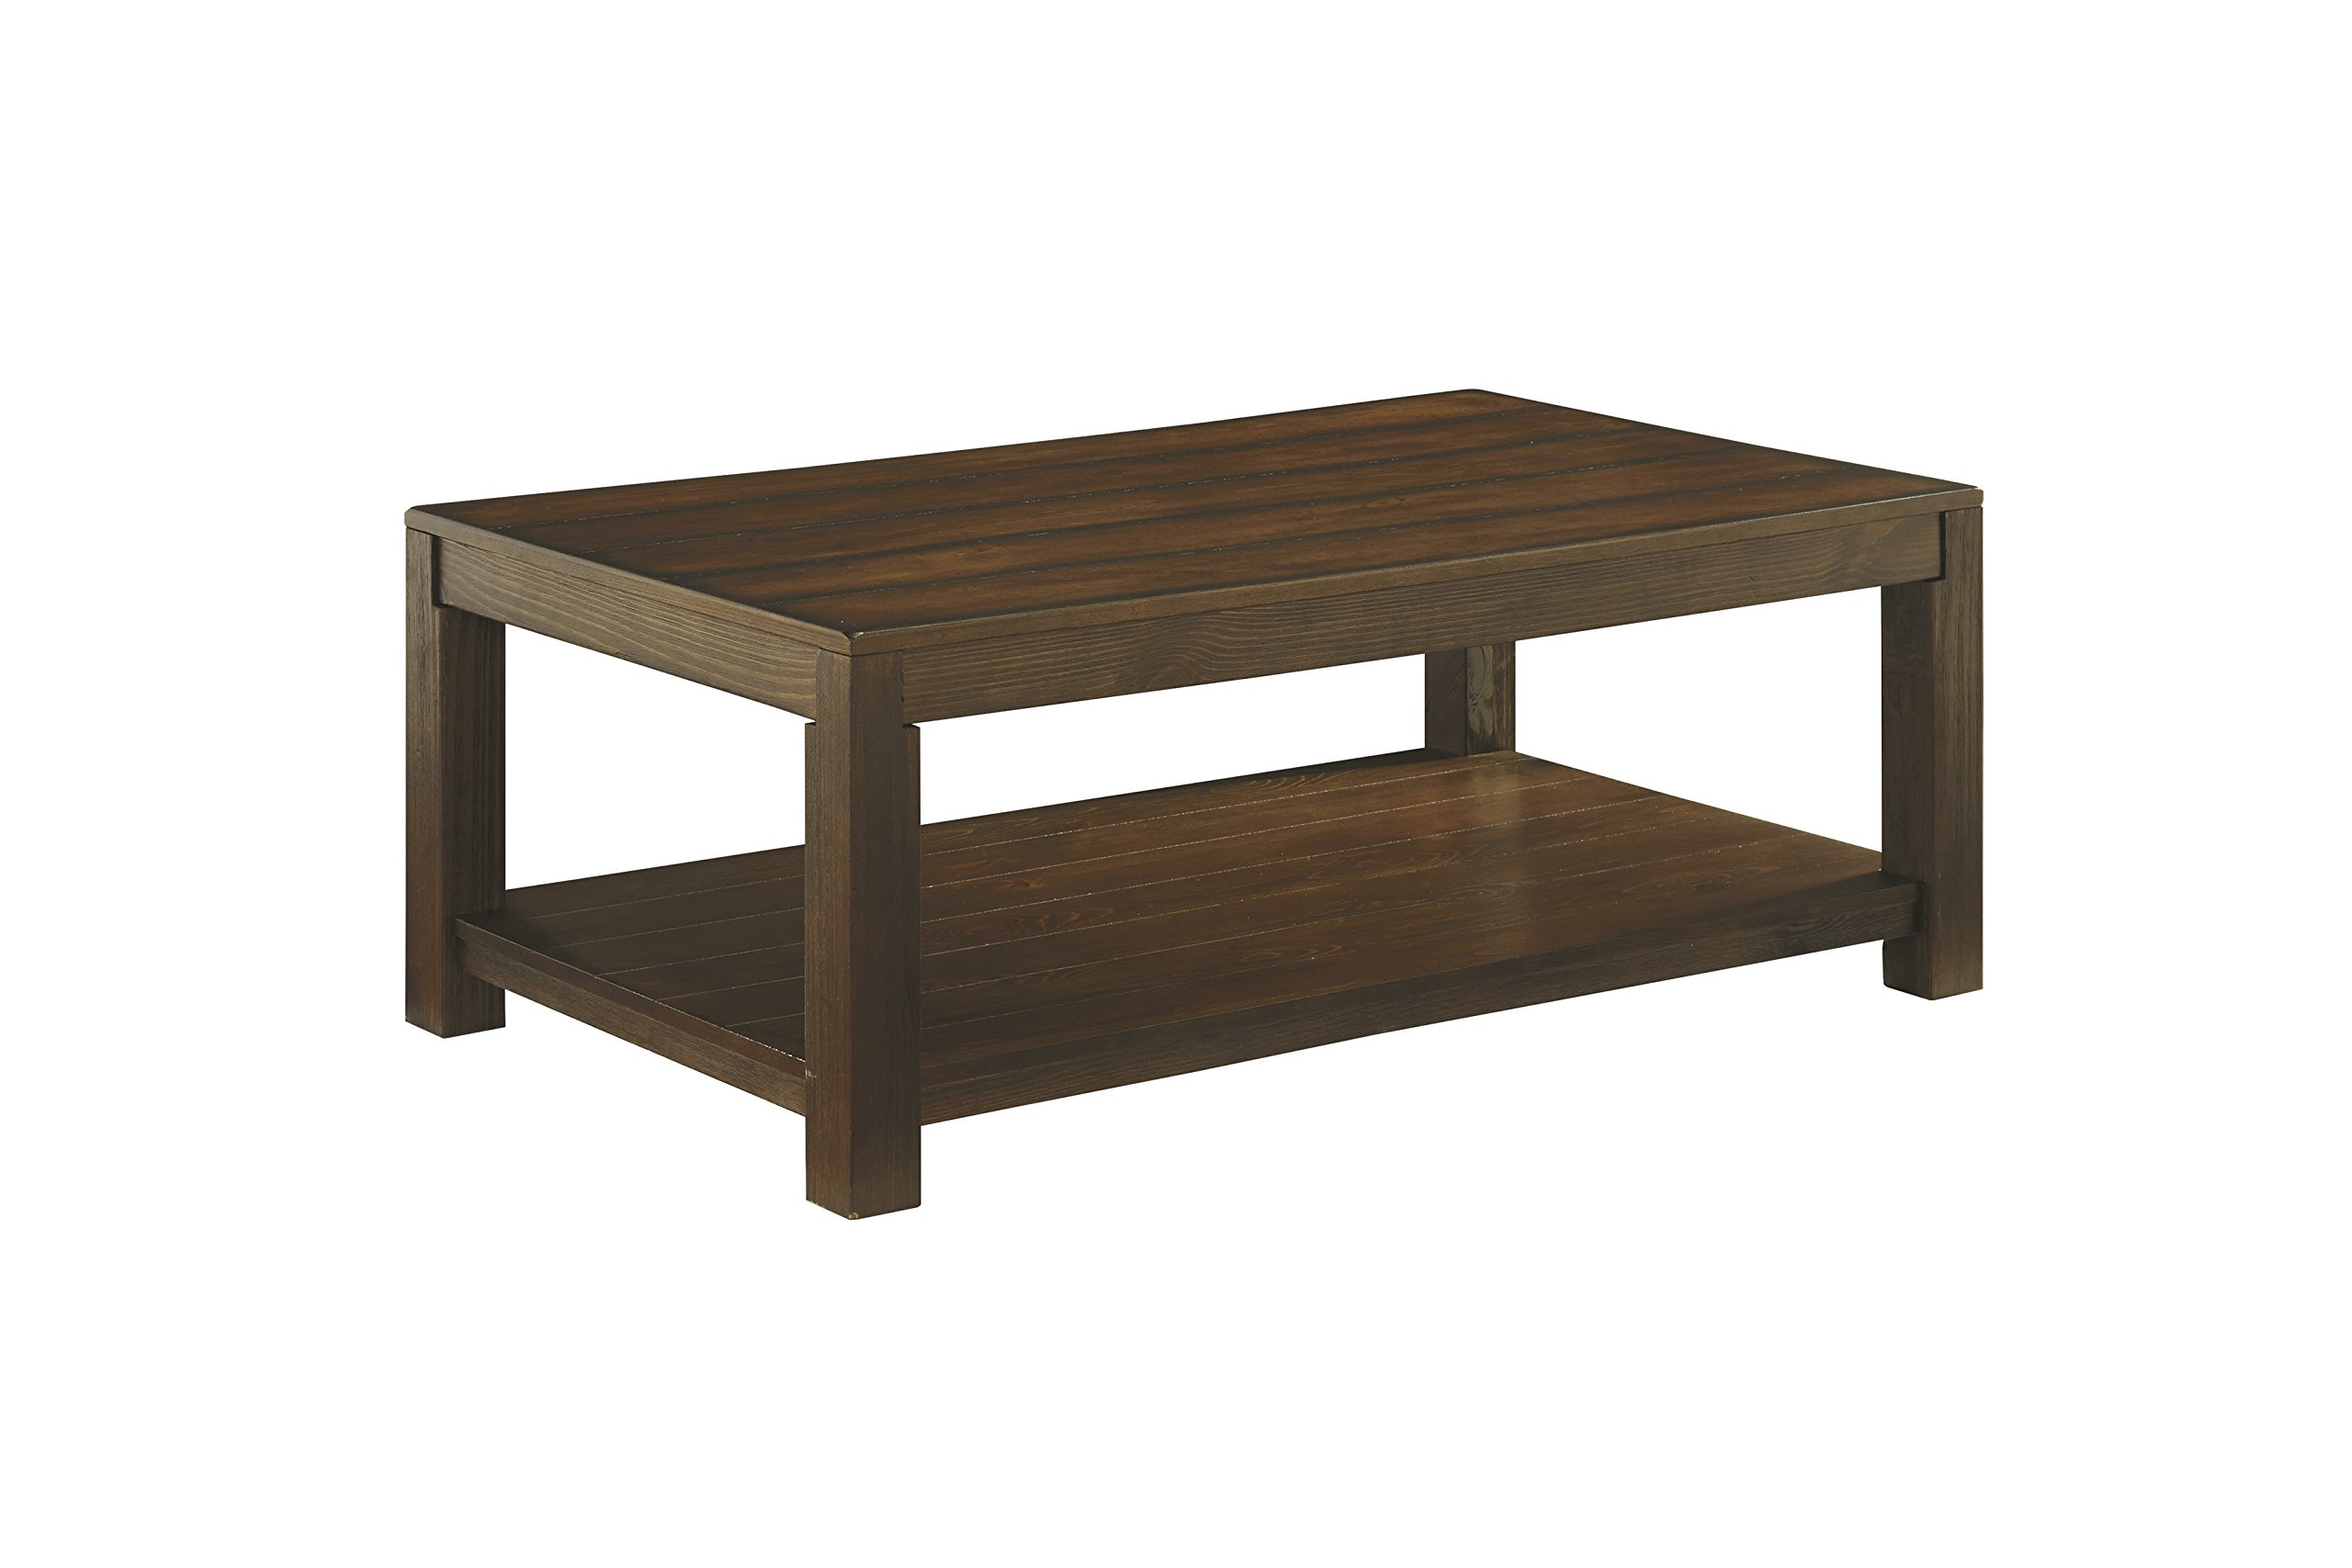 Ashley Furniture Signature Design - Grinlyn Coffee Table - Cocktail Height with Lower Shelf - Rectangular - Rustic Brown